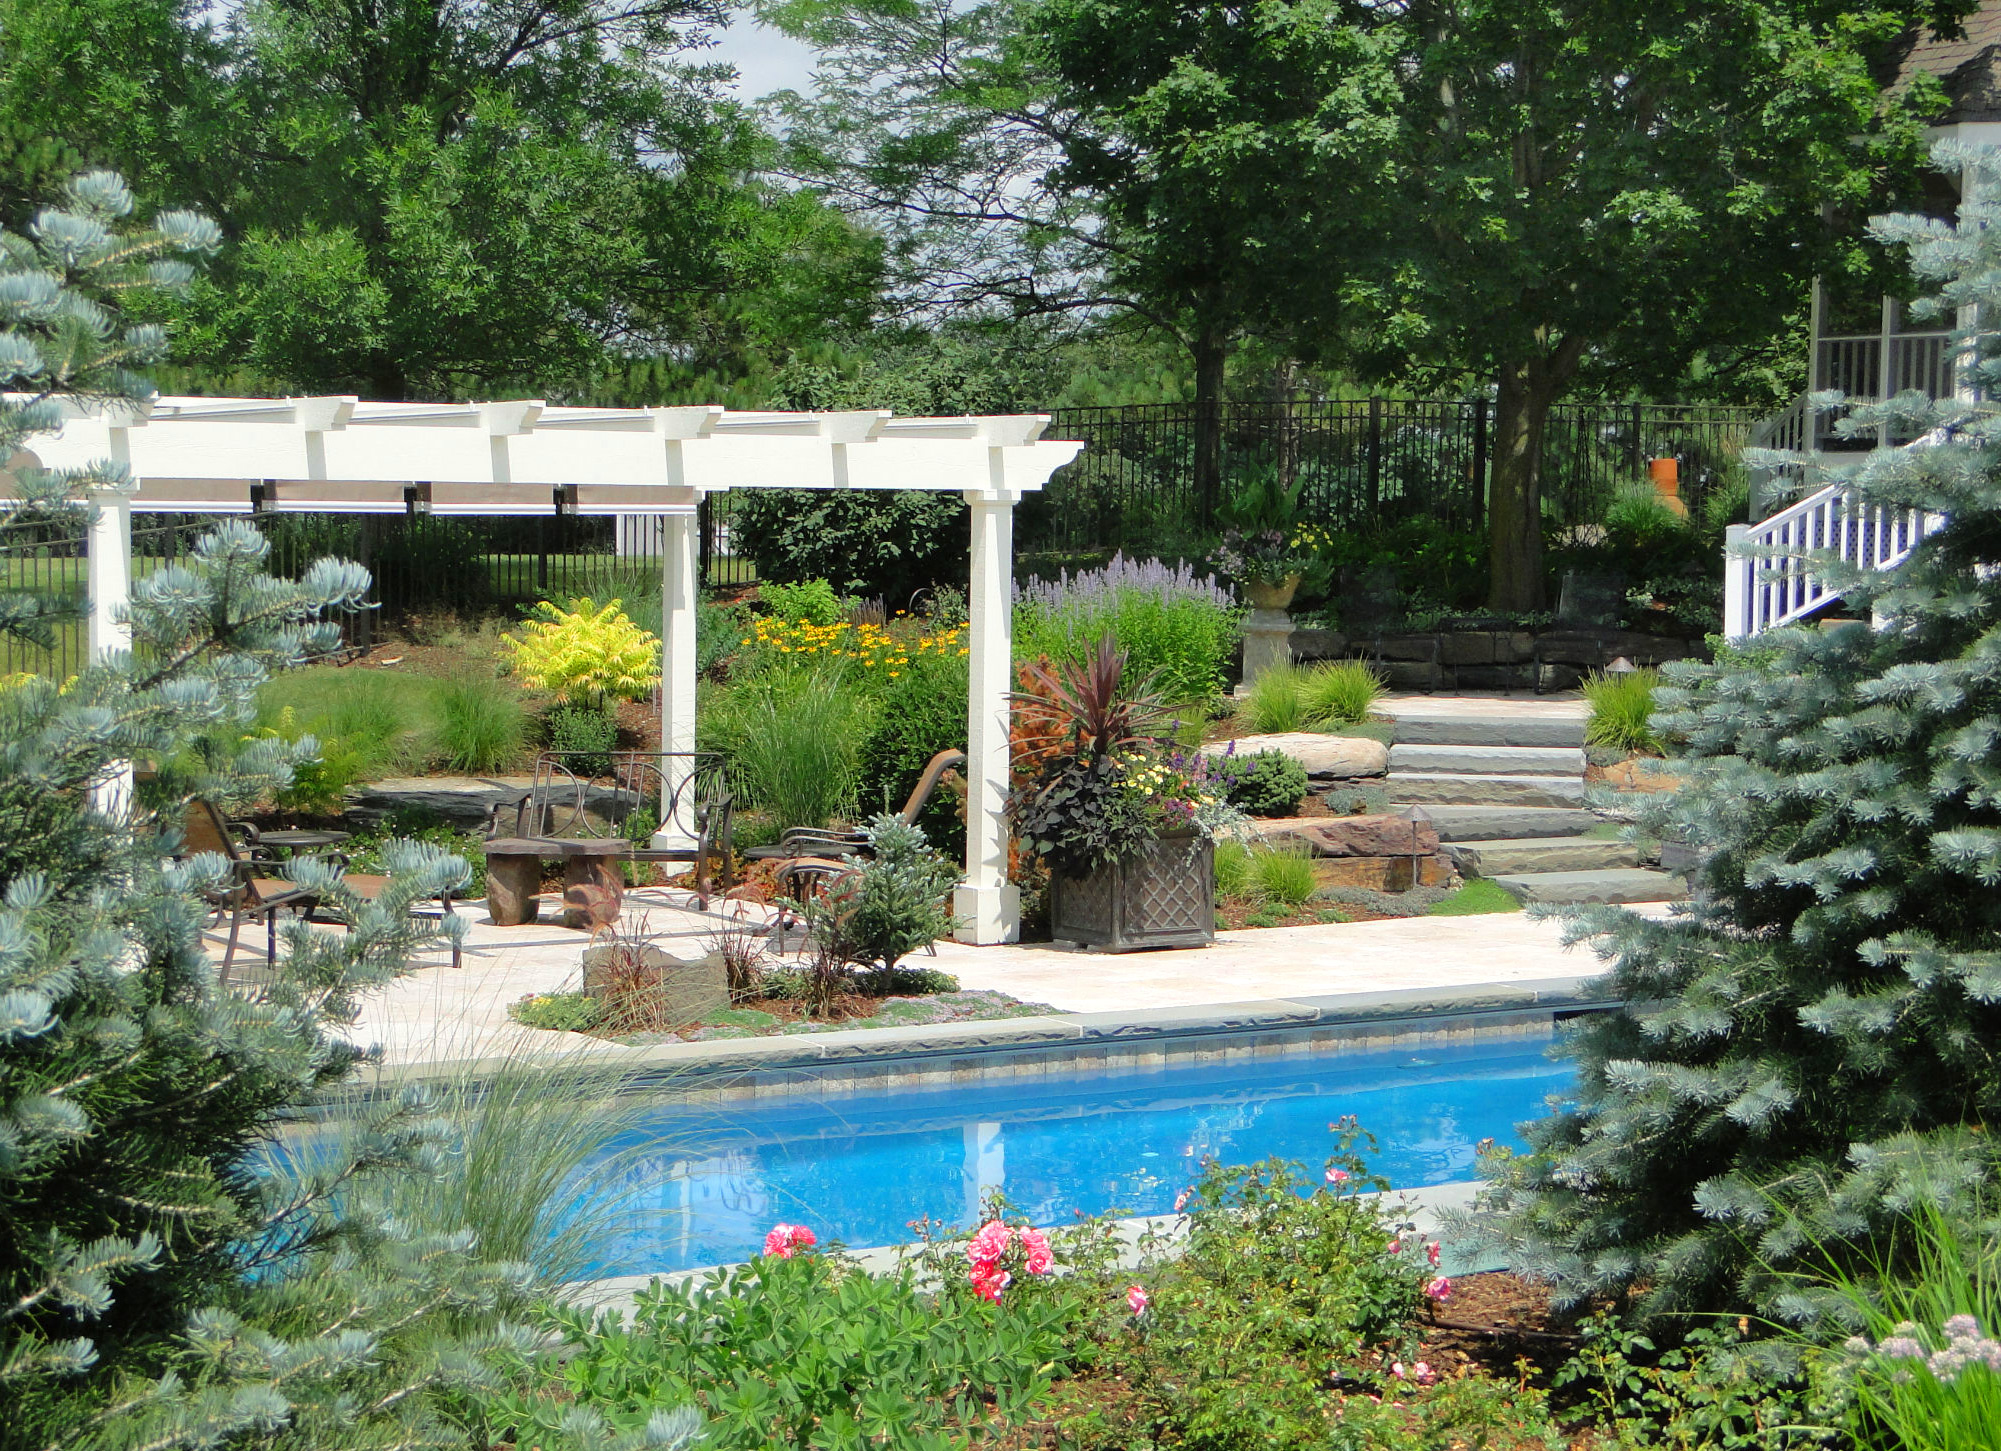 Landscaping around the pool is complete and a custom pergola has been installed